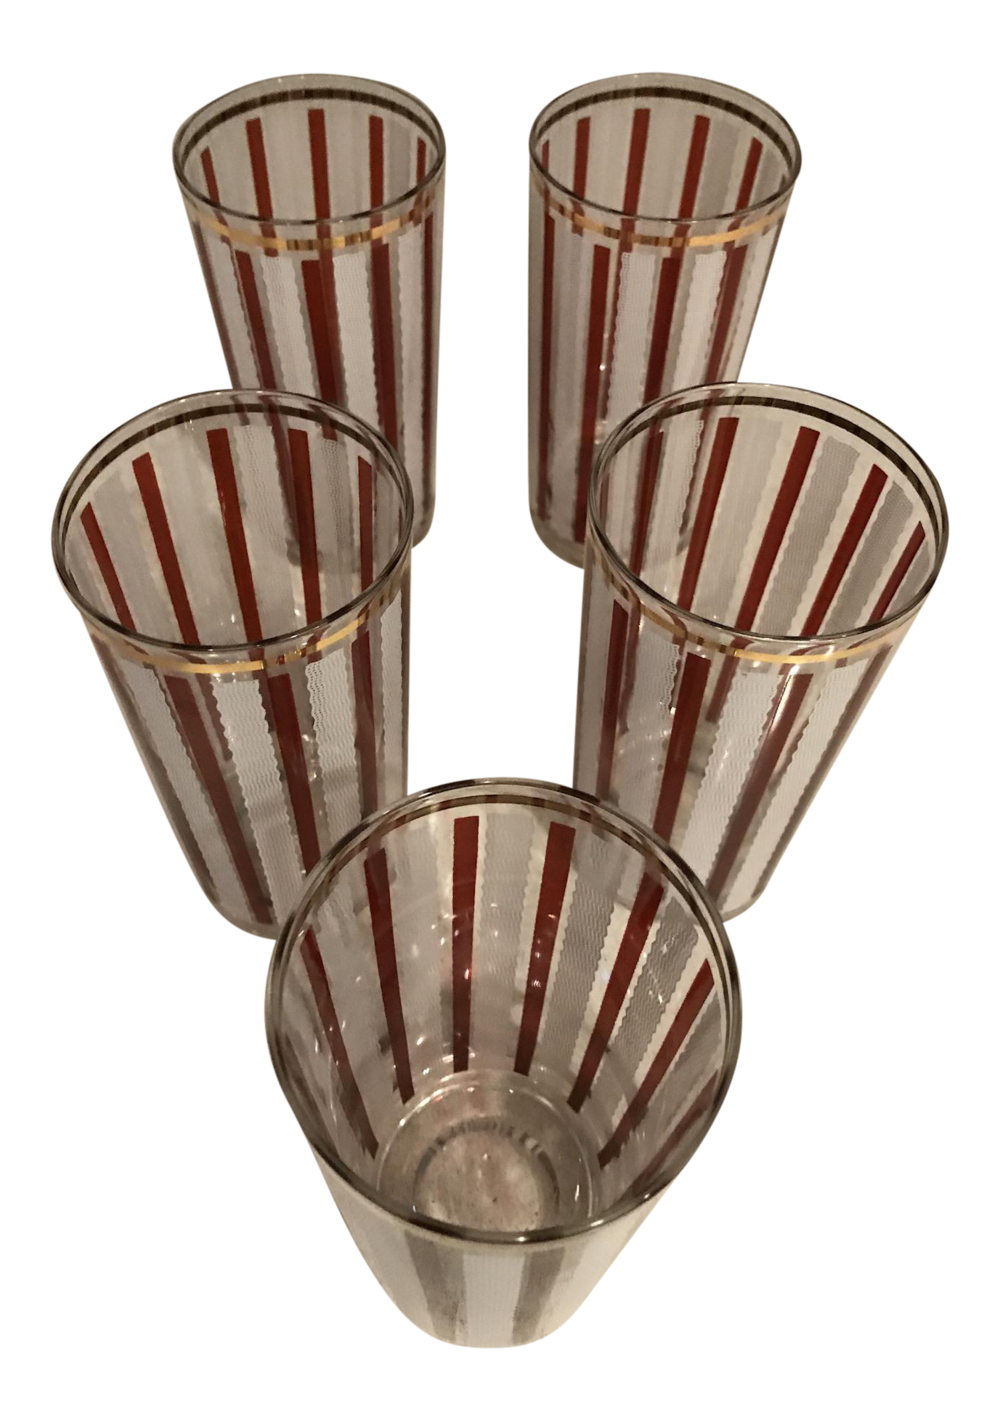 striped-drinking-glasses-set-of-5-2021.png